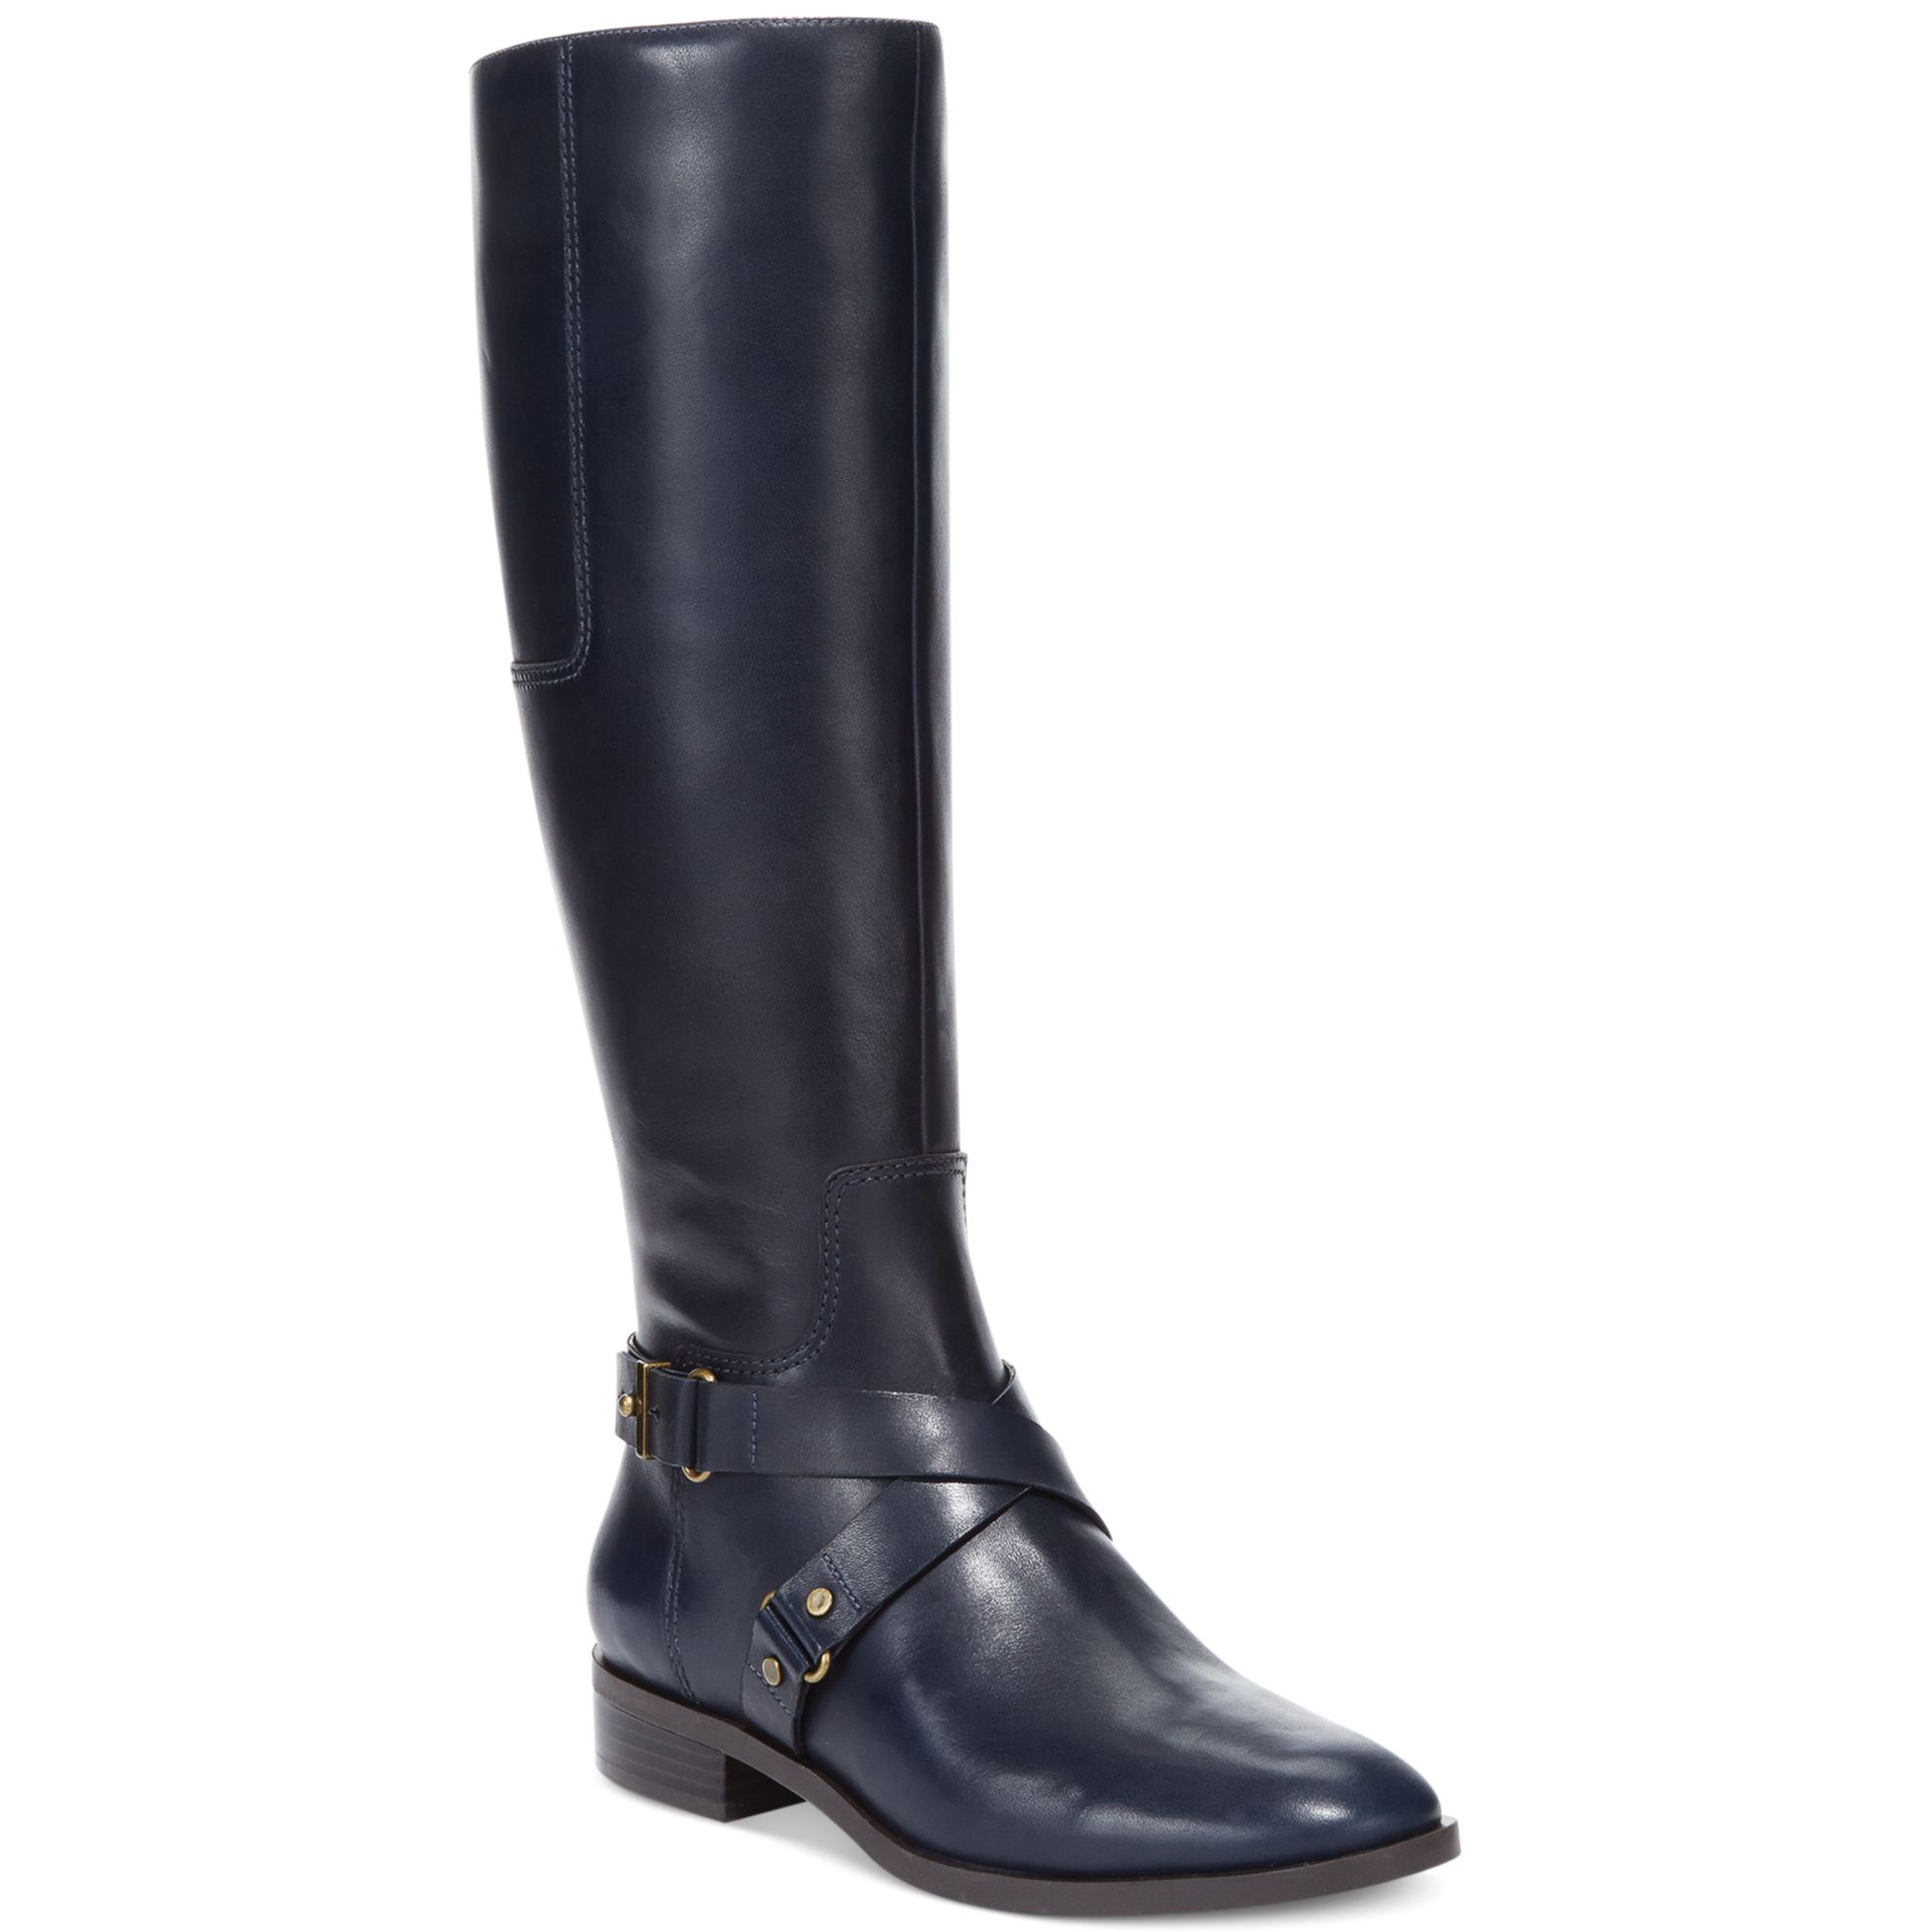 Nine West Blogger Tall Riding Boots in